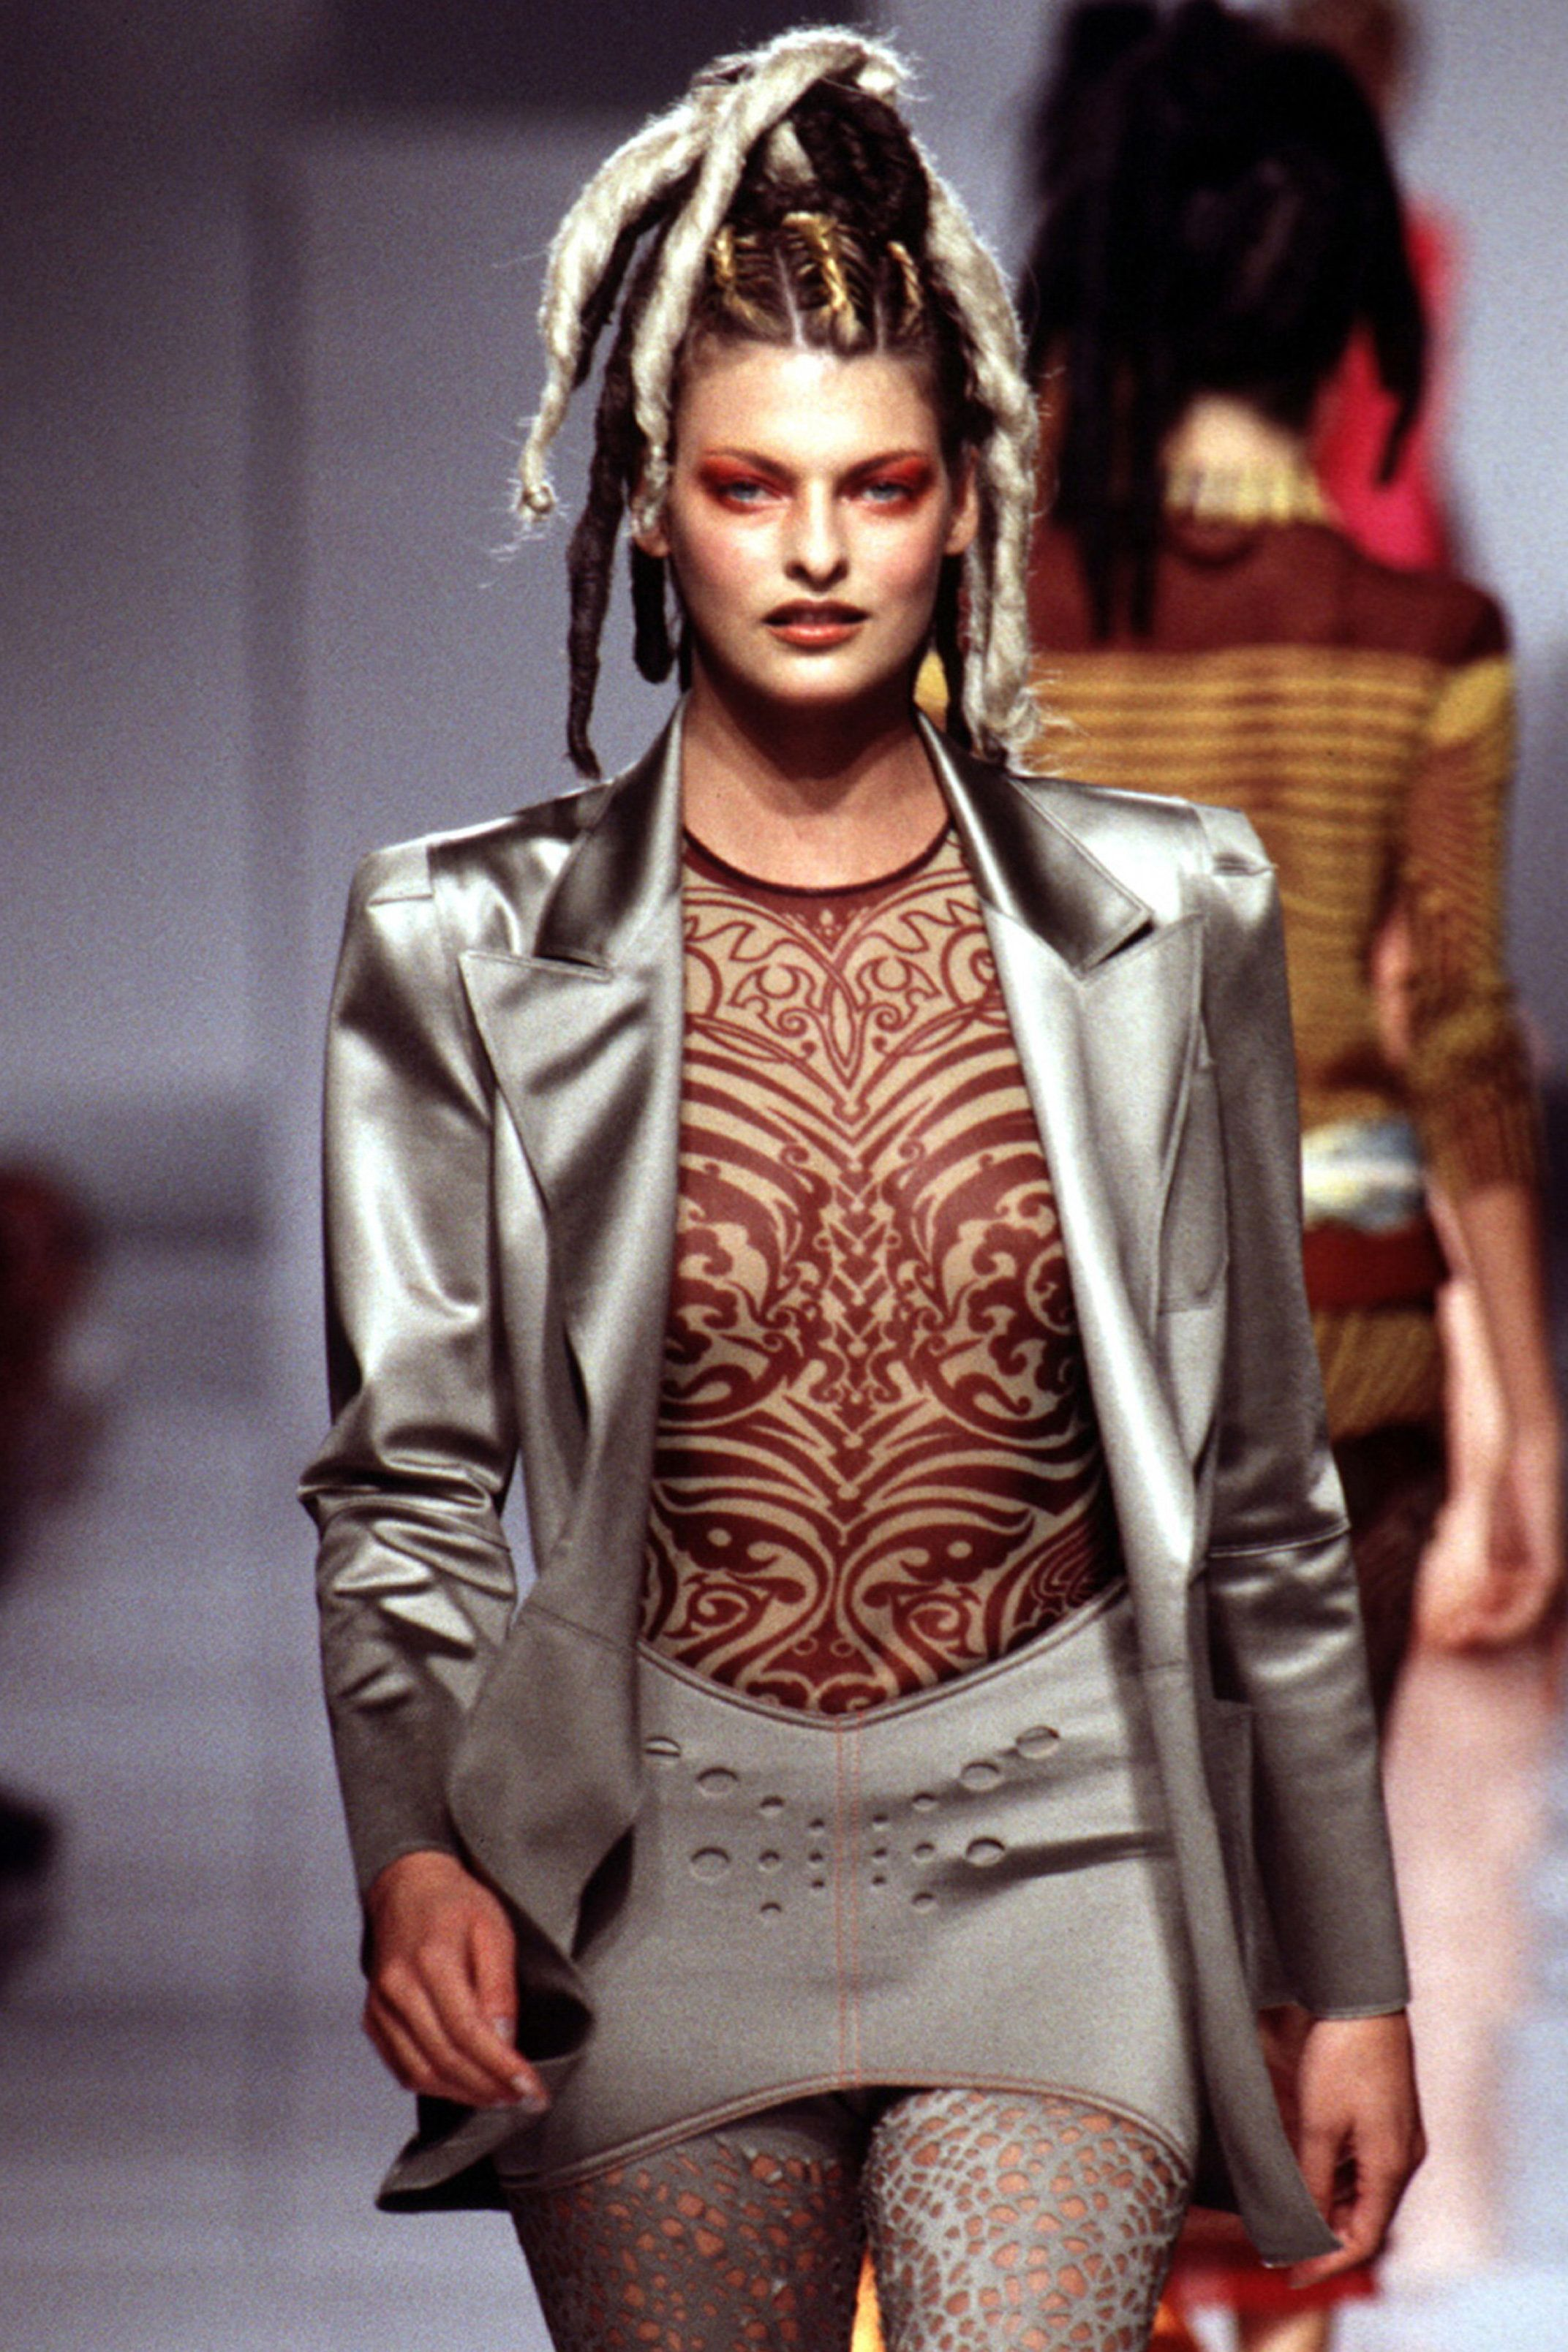 PARIS, FRANCE - OCTOBER: Linda Evangelista walks the runway during the Jean Paul Gaultier Ready to Wear show as part of Paris Fashion Week Spring/Summer 1995-1996 in October, 1995 in Paris, France. (Photo by Victor VIRGILE/Gamma-Rapho via Getty Images)